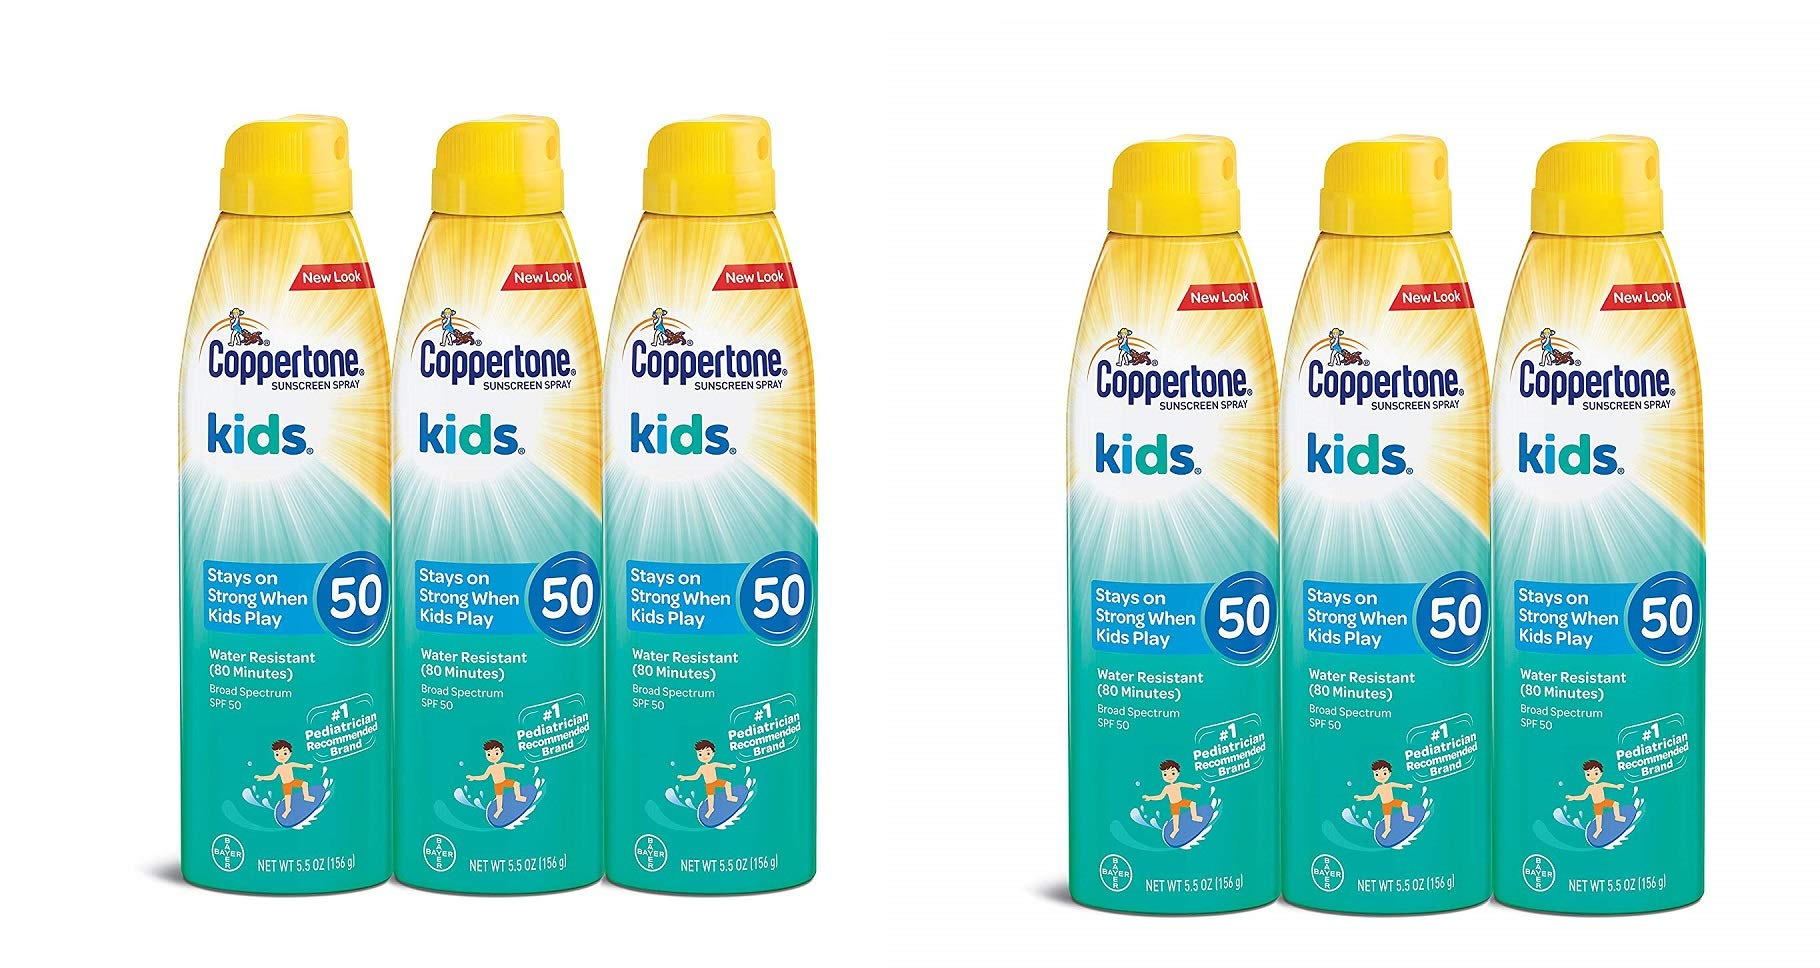 Coppertone KIDS Continuous Sunscreen SPF 50 Multipack, 5.5 Ounce, Pack of 3